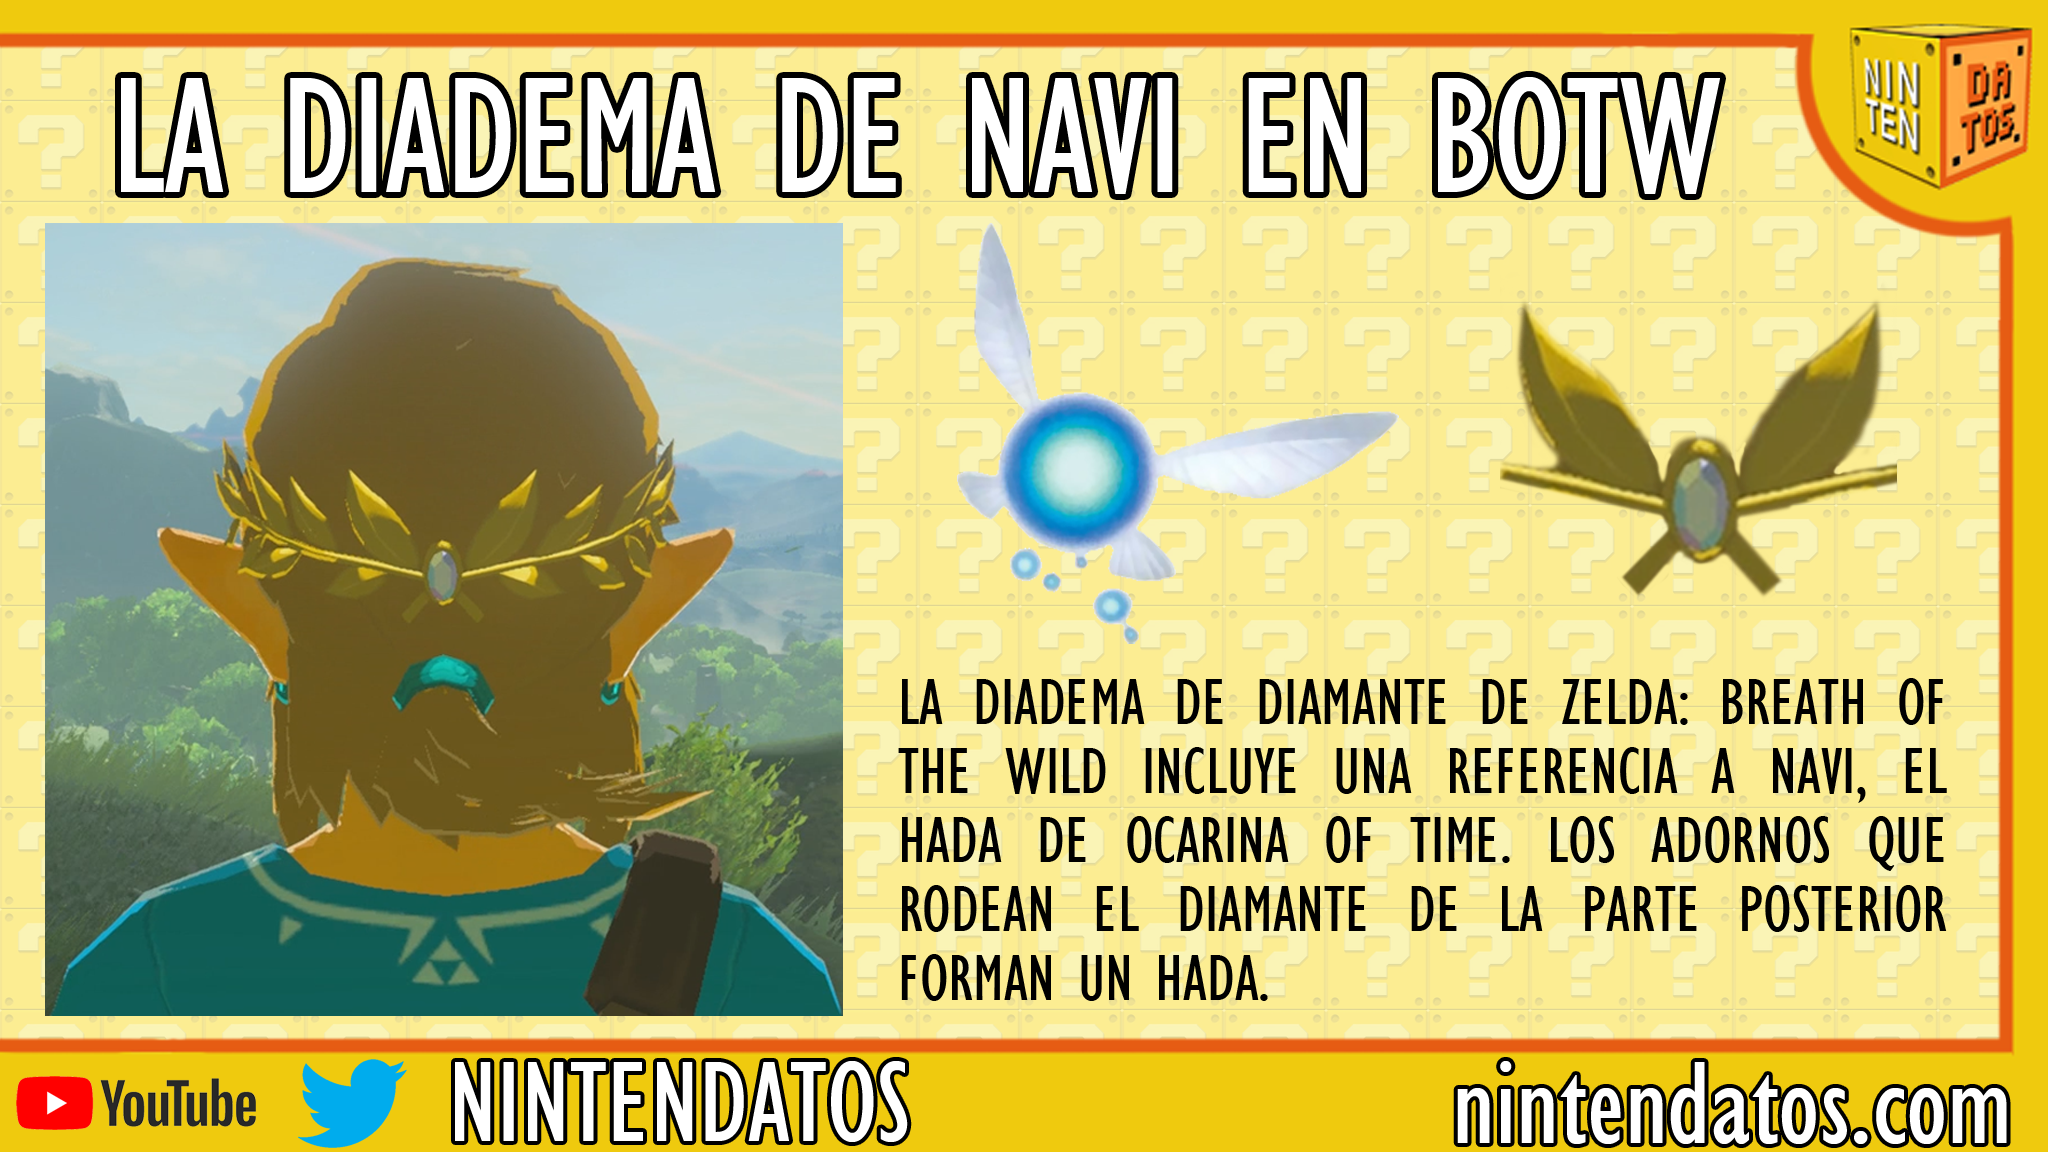 La diadema de Navi en Breath of the Wild